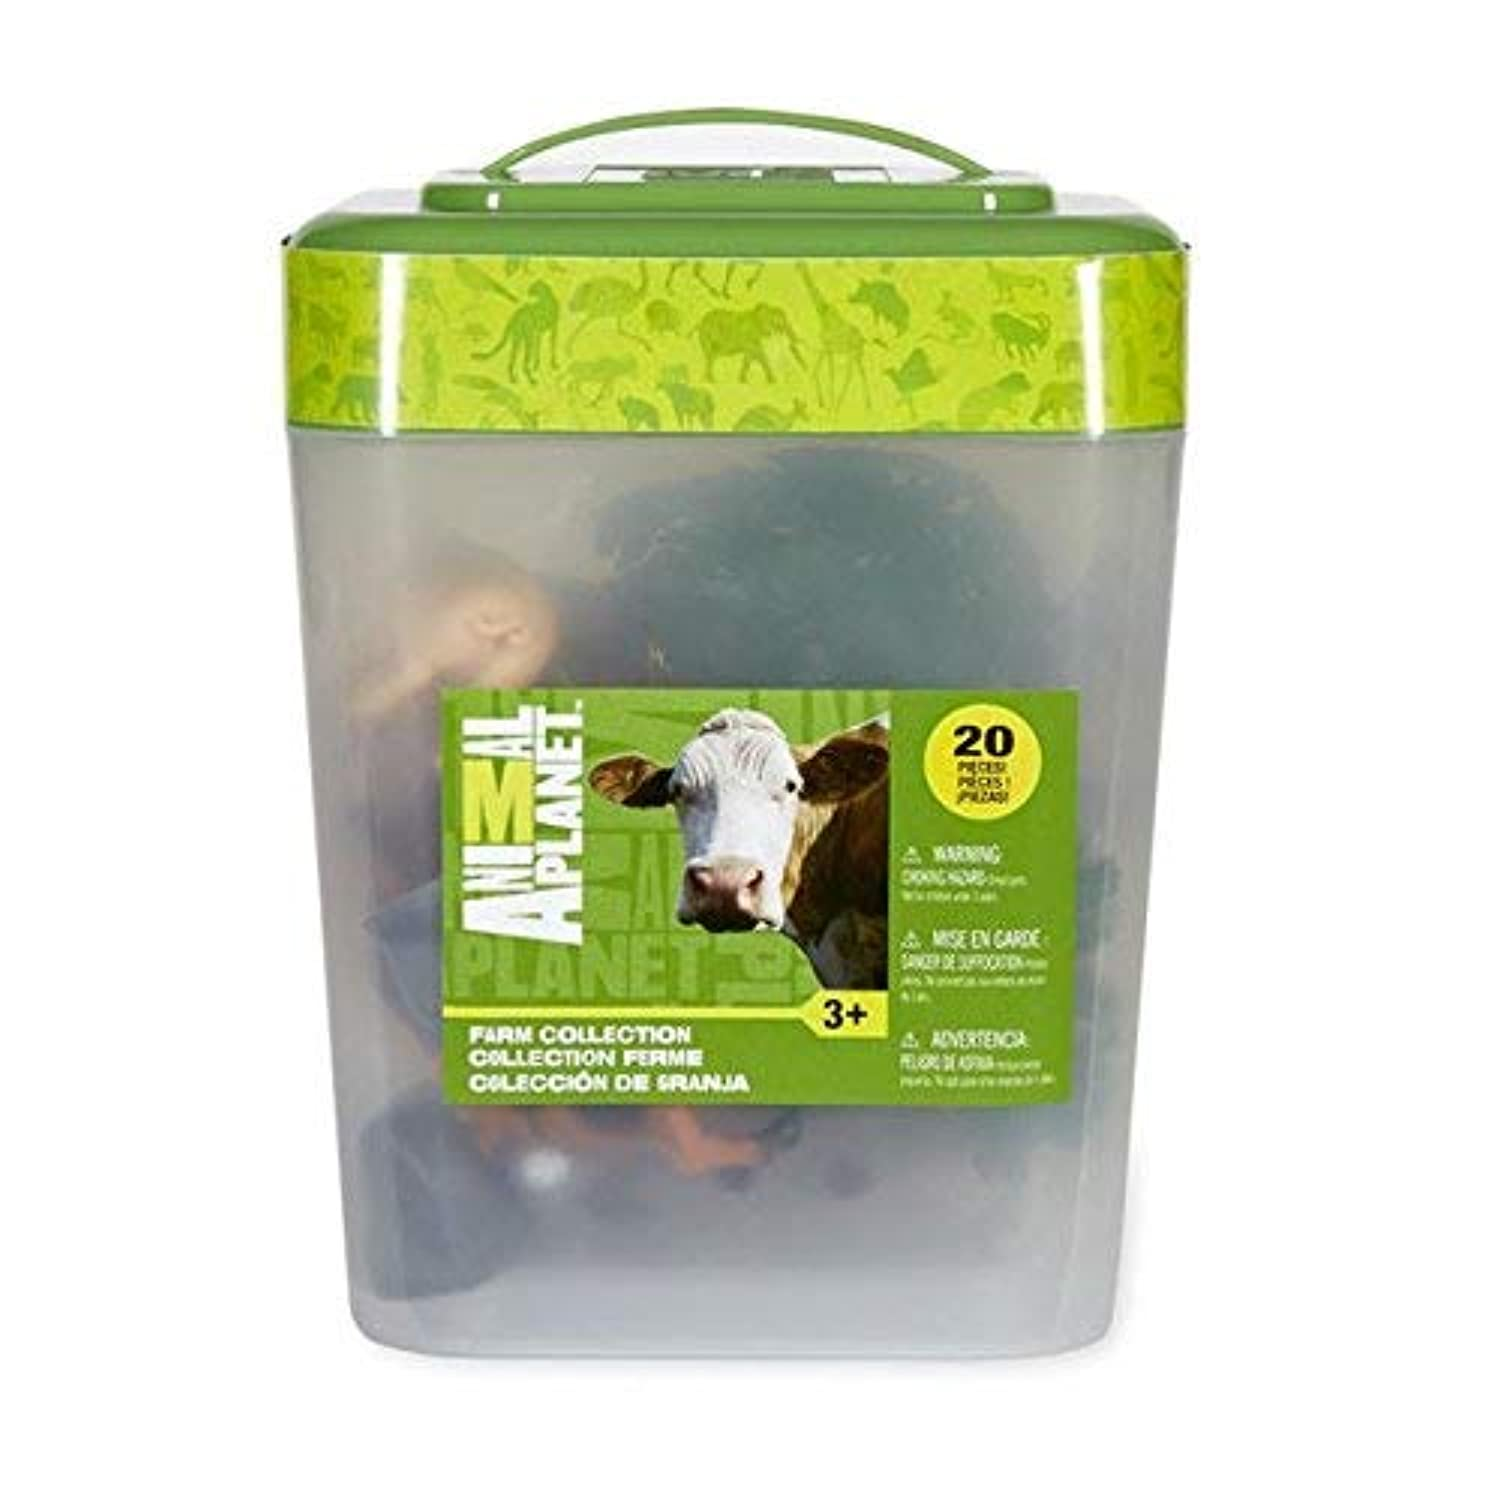 Animal Planet Farm Bucket Collection - 20 Piece